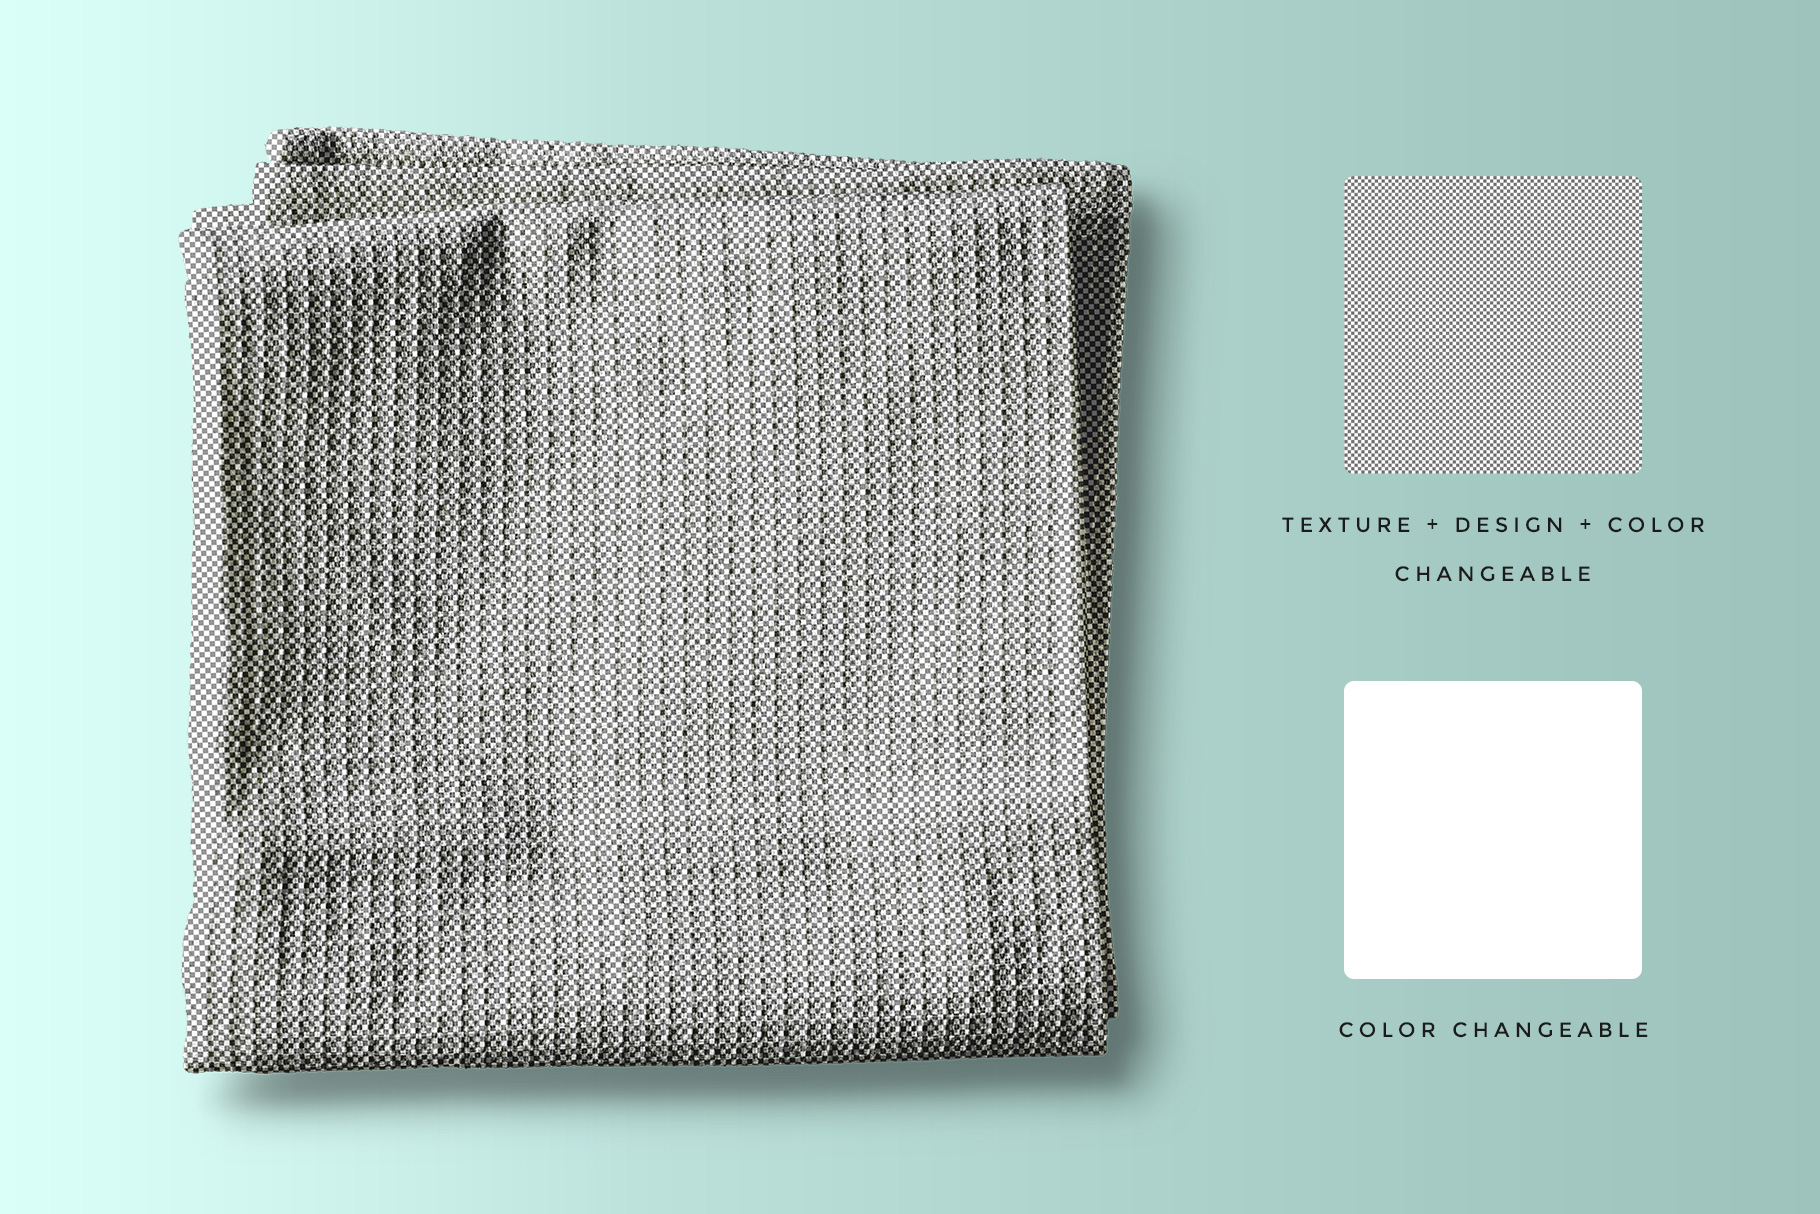 editability of the top view kitchen towel mockup